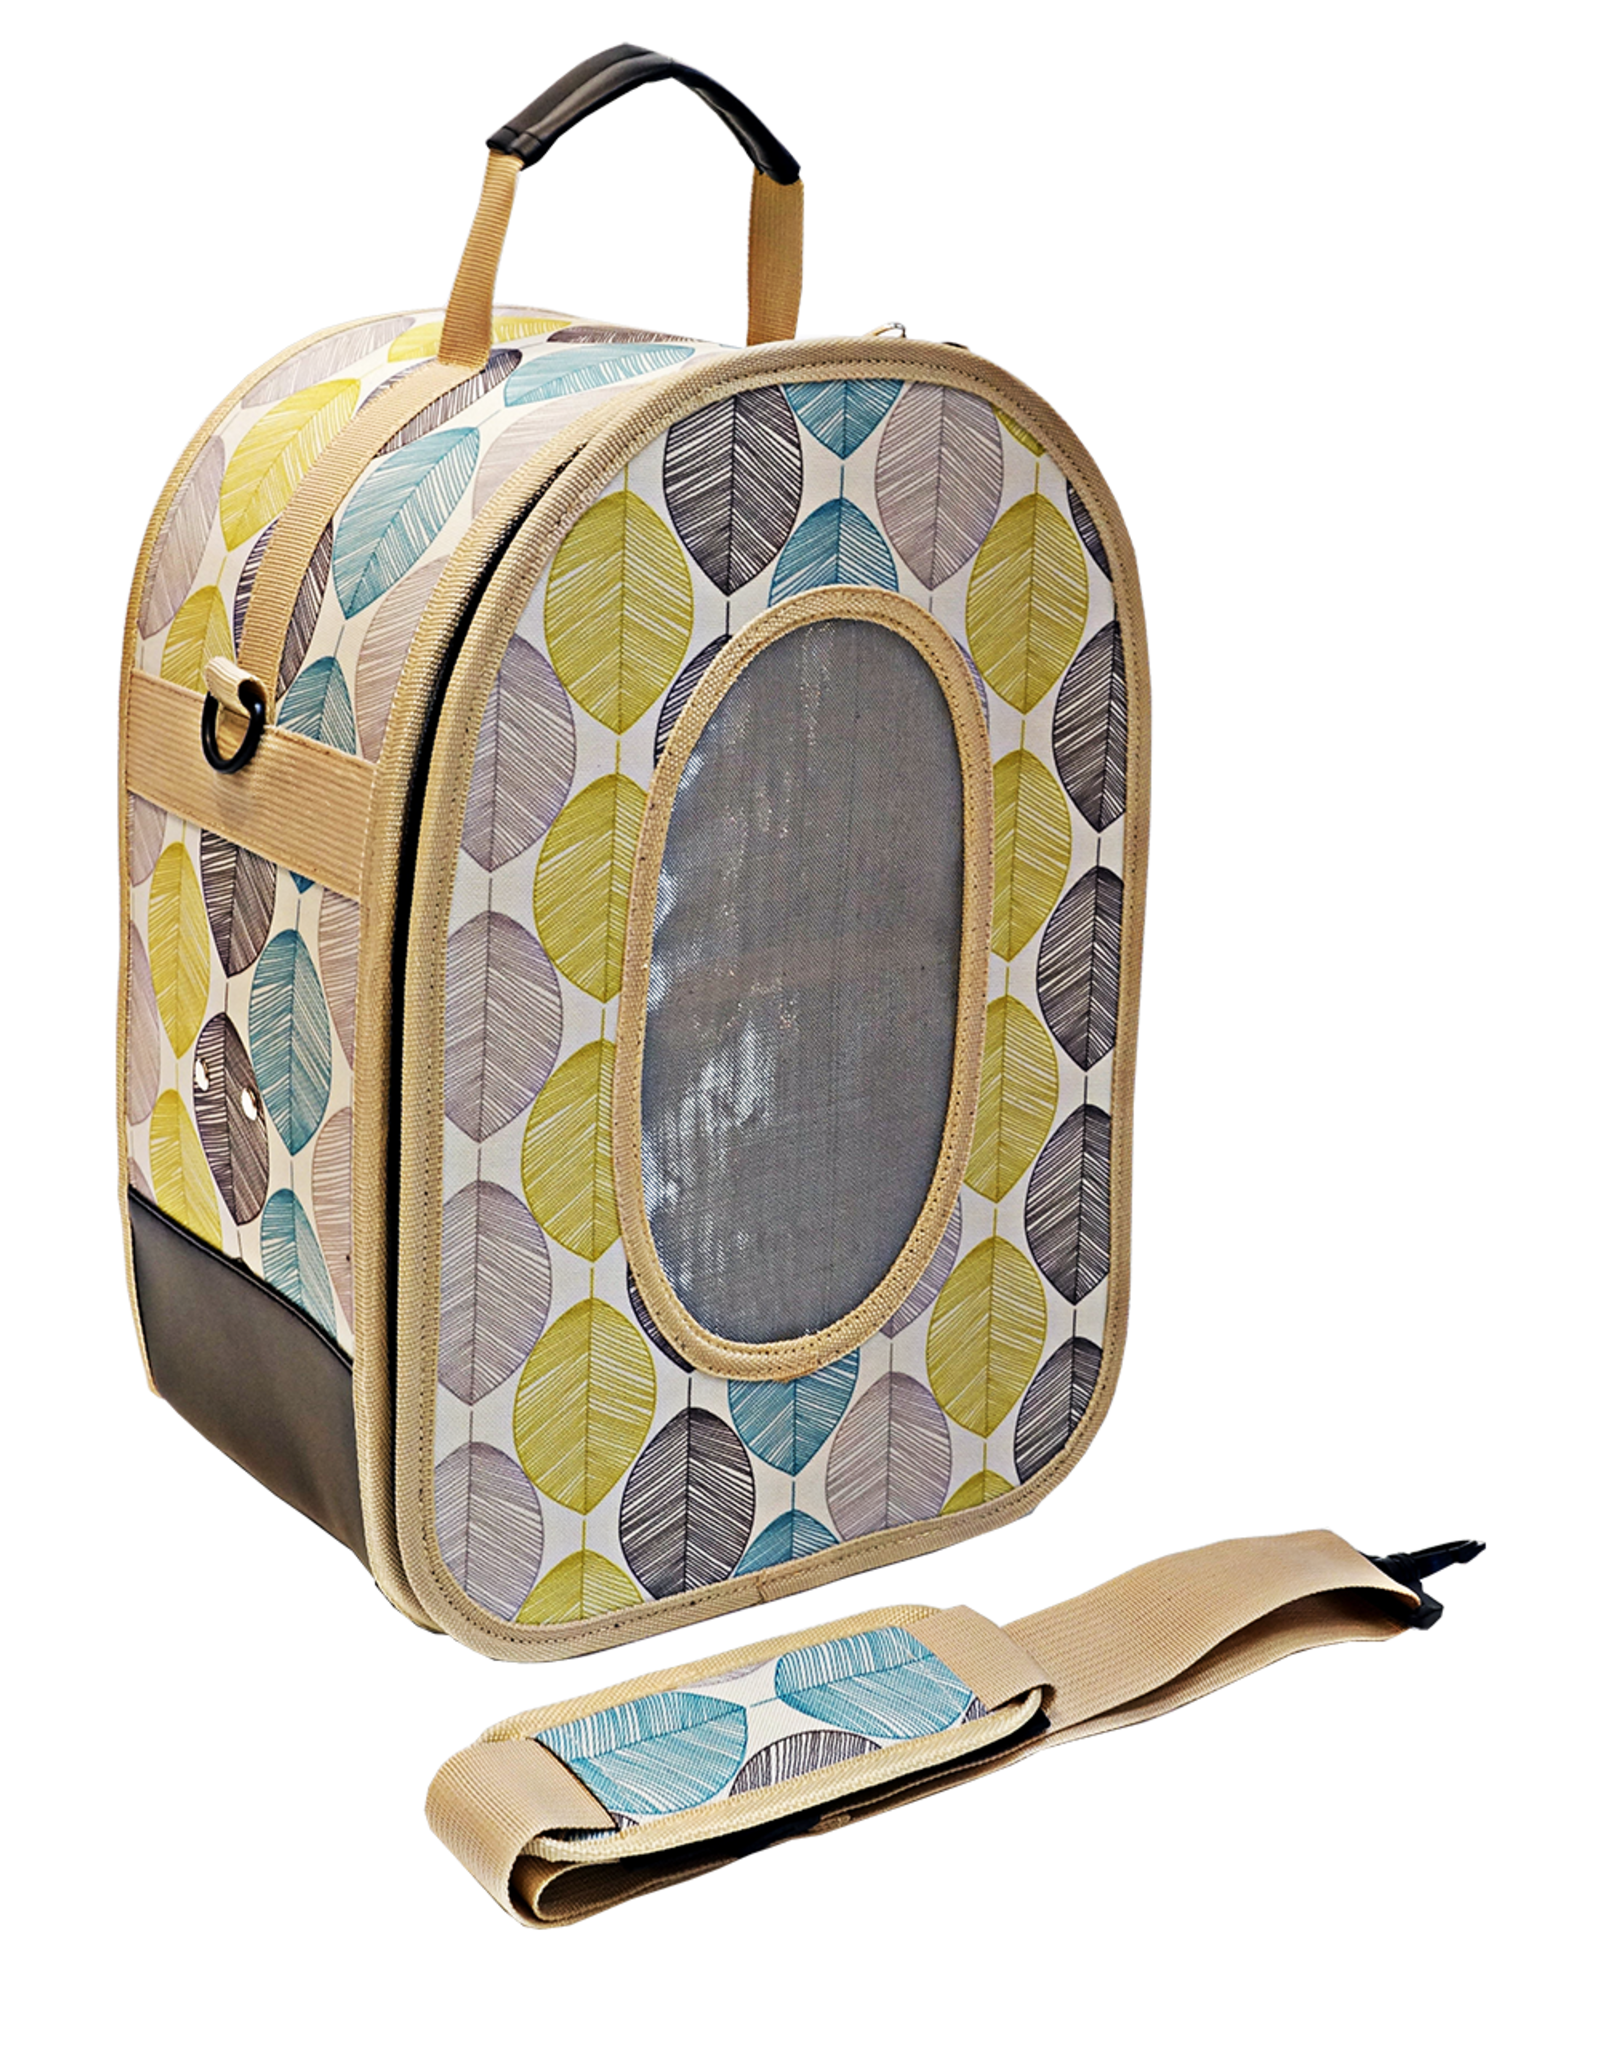 """Soft Sided Travel Carrier - LARGE LEAF 18.5"""" x 13.5"""" x 9"""""""